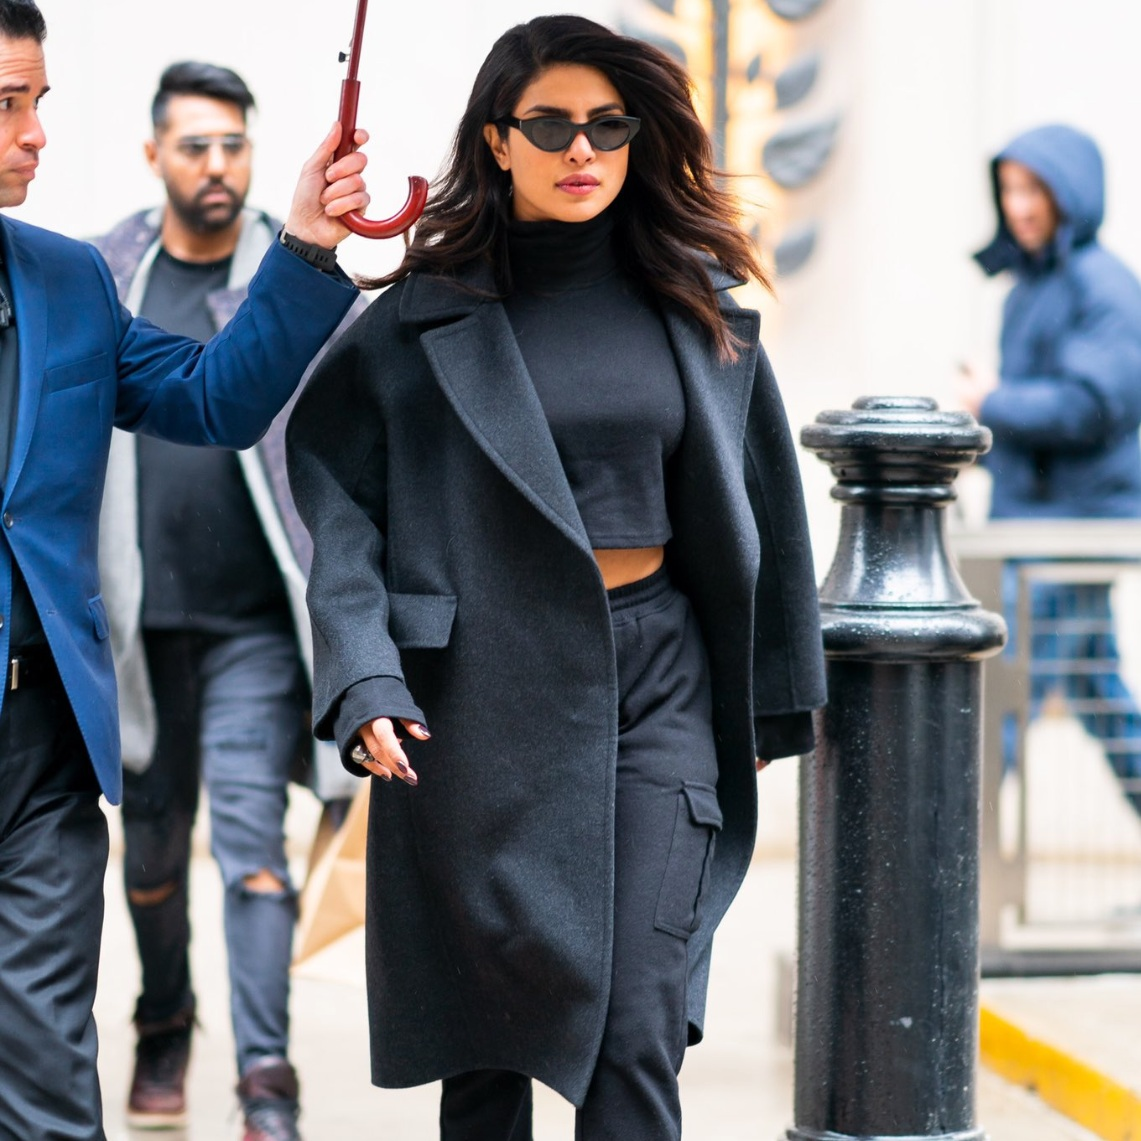 PRIYANKA CHOPRA IN CARGO TRACKSUIT // MARCH 2019